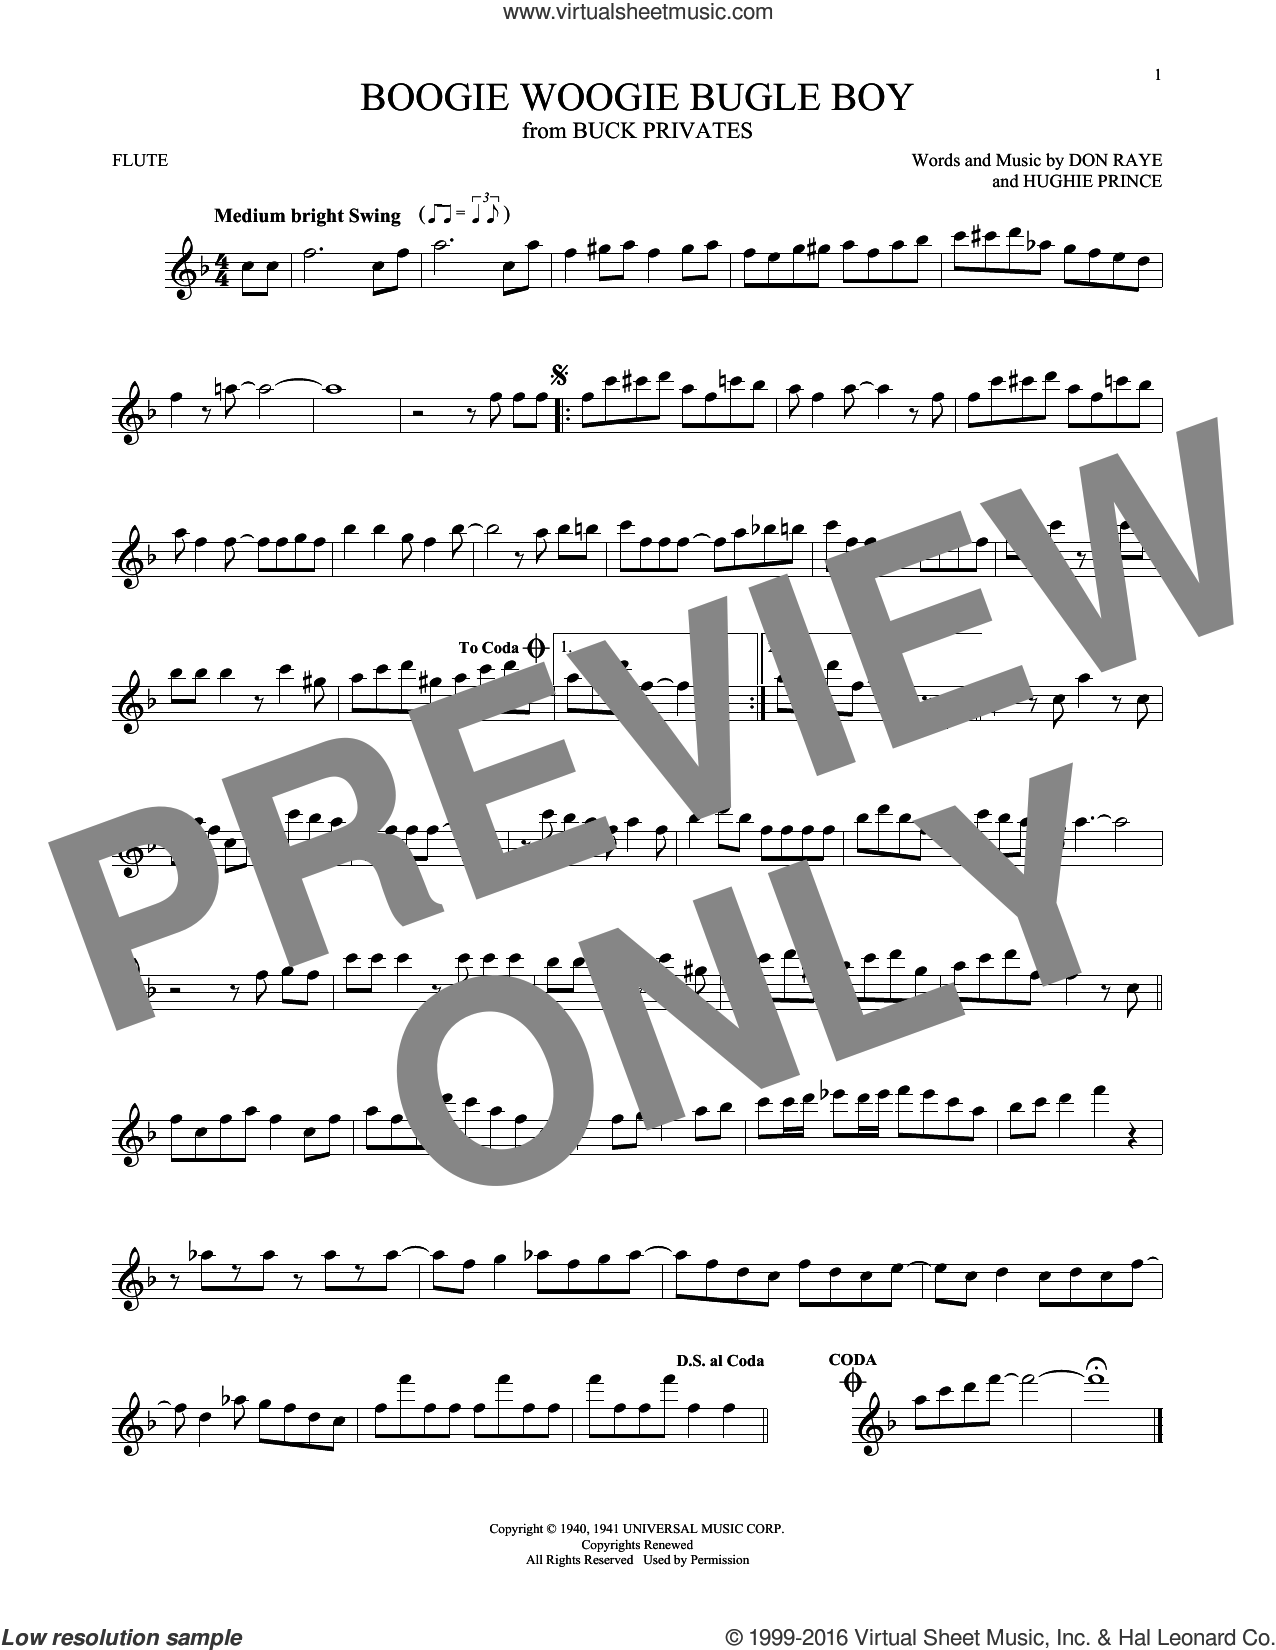 Boogie Woogie Bugle Boy sheet music for flute solo by Hughie Prince, Bette Midler and Don Raye. Score Image Preview.